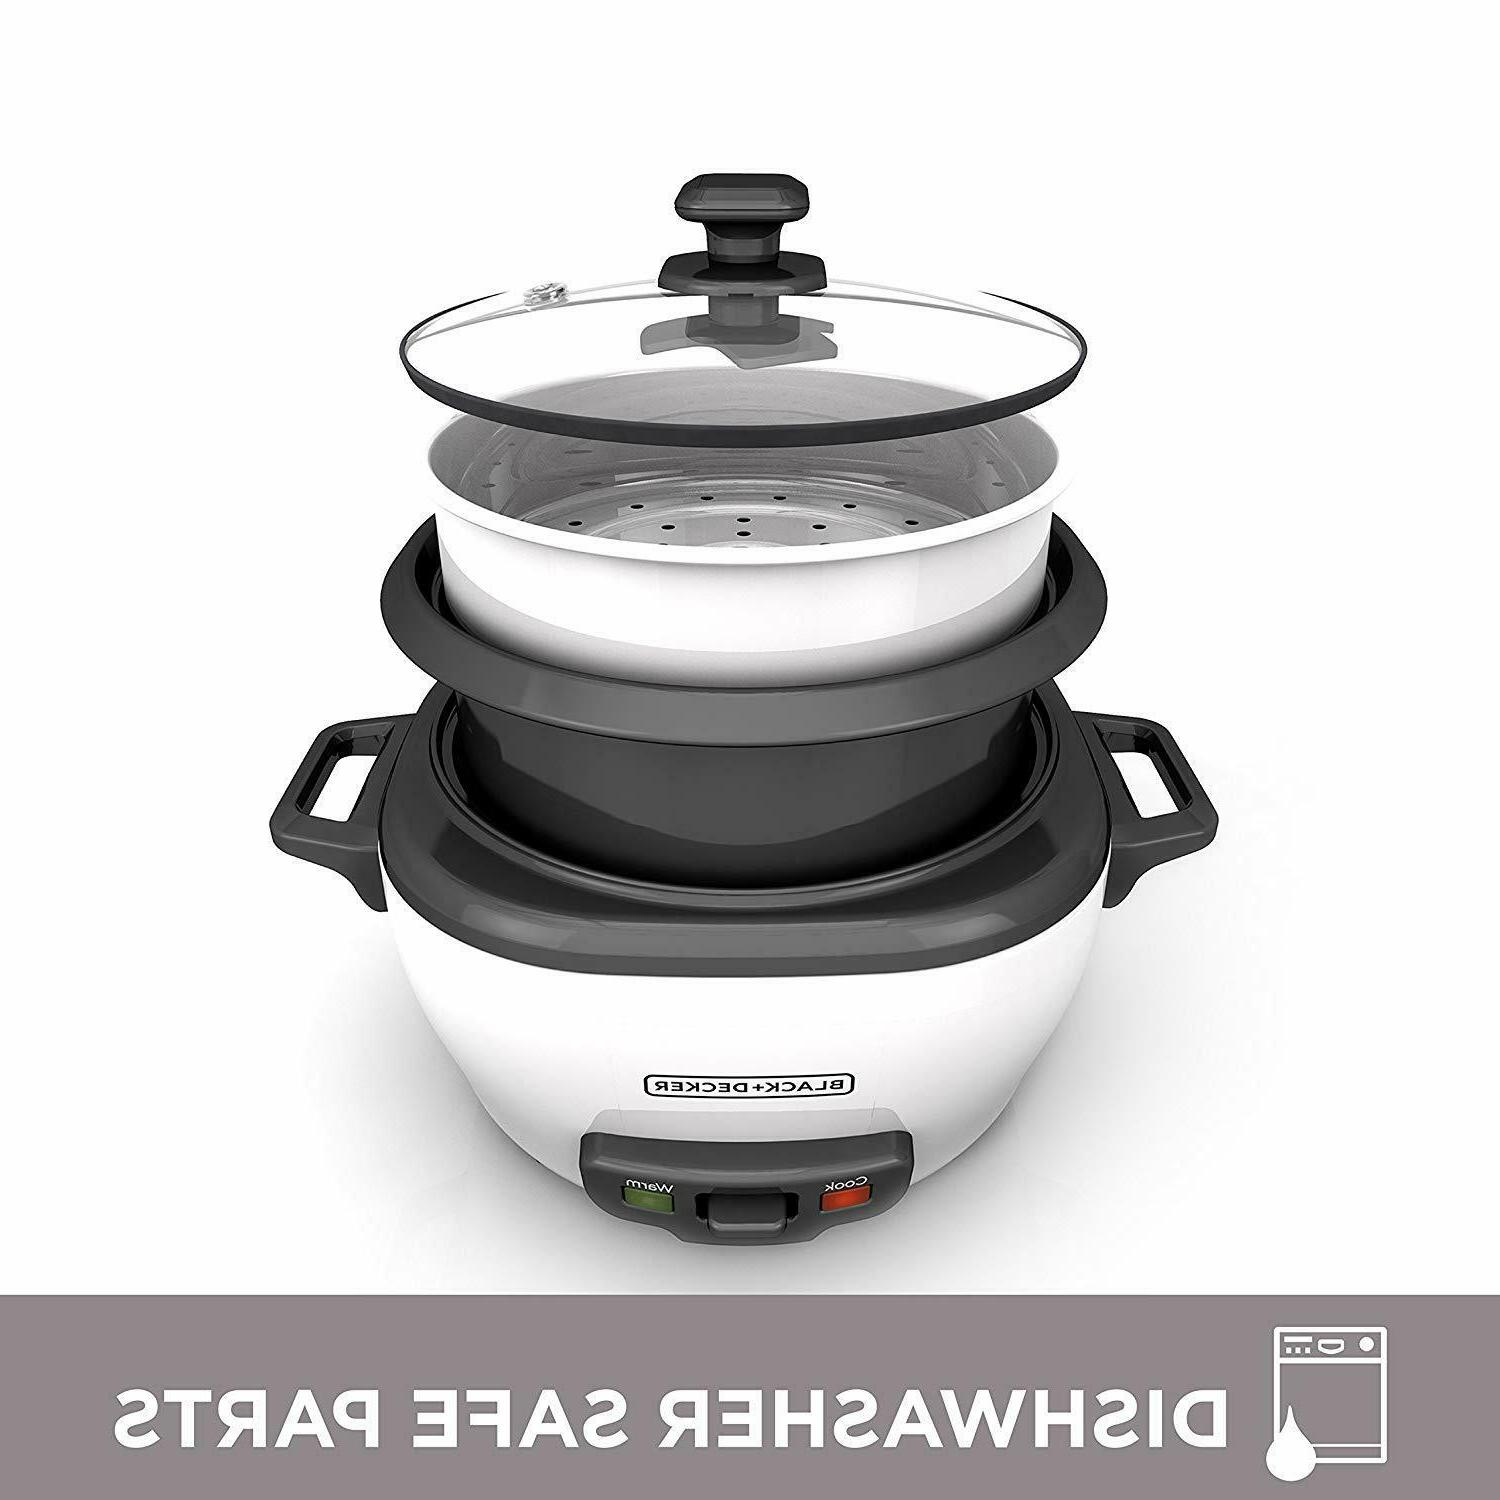 RICE COOKER 6-Cup Cooked 3-Cup Uncooked Nonstick Pot White E